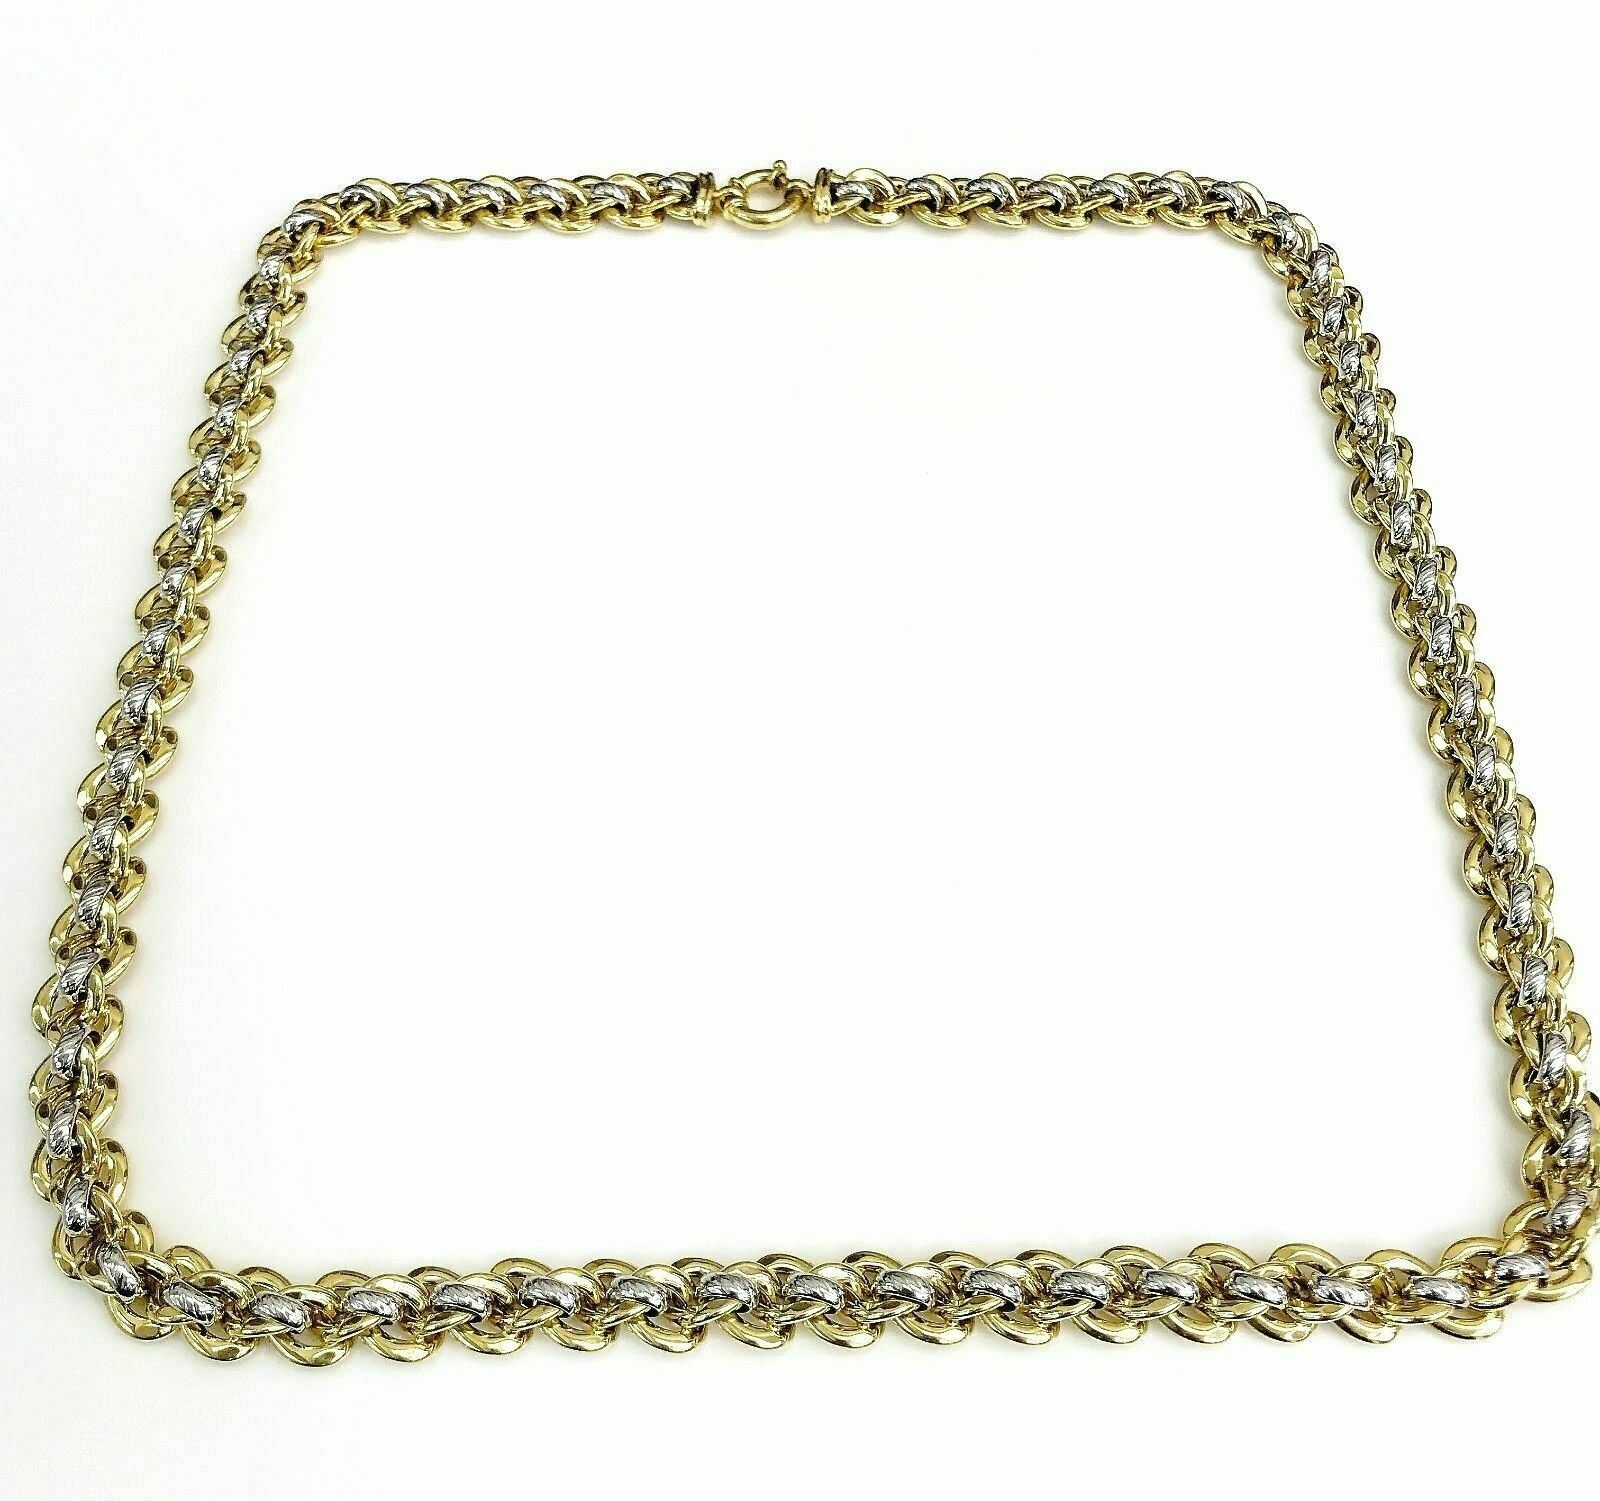 Solid 14K Gold 2Tone Gold Chain/Necklace 29.5 Inch 2.96 Ounces Made in Italy